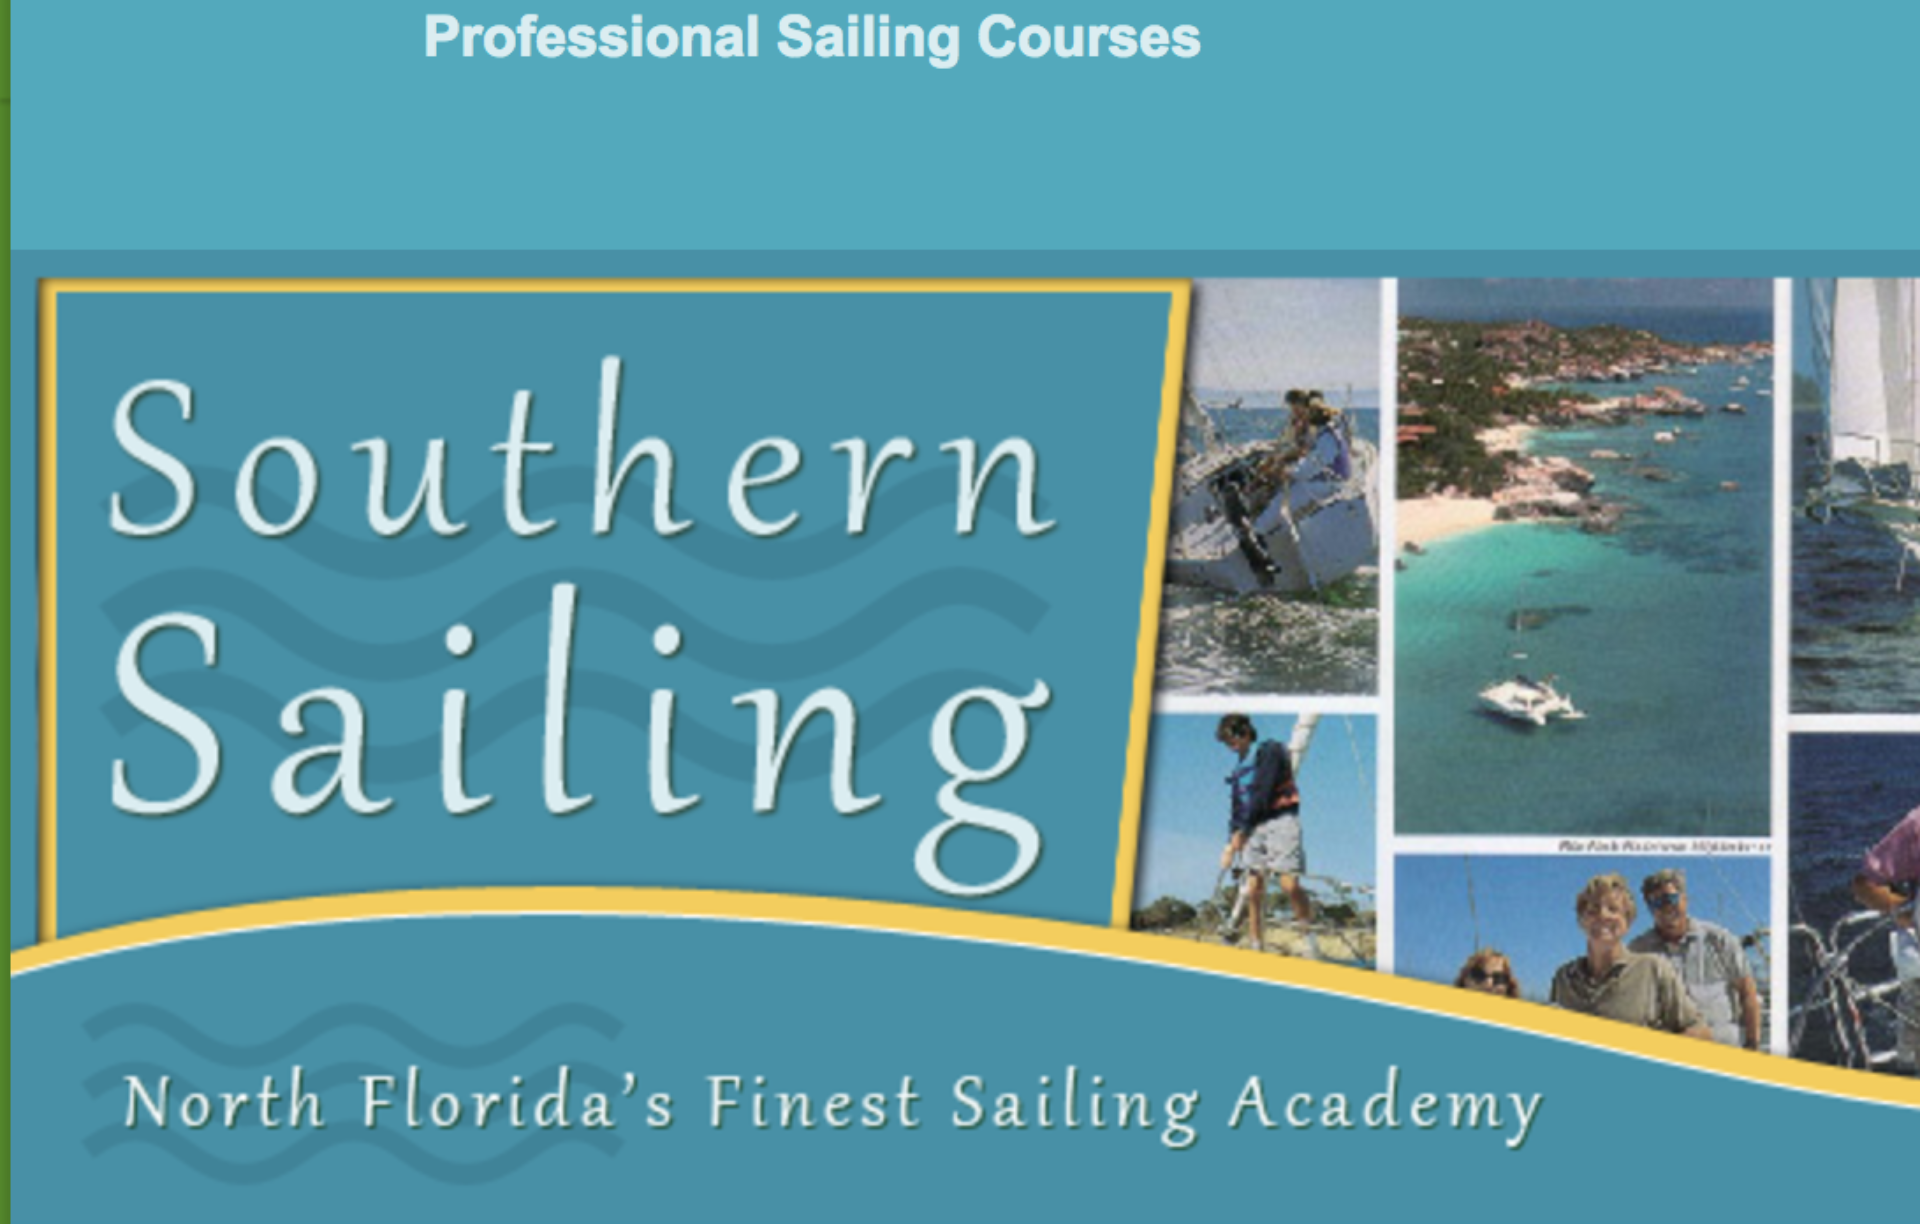 Southern Sailing School + Academy ~~~ 833-533-0033 & 904-728-2161